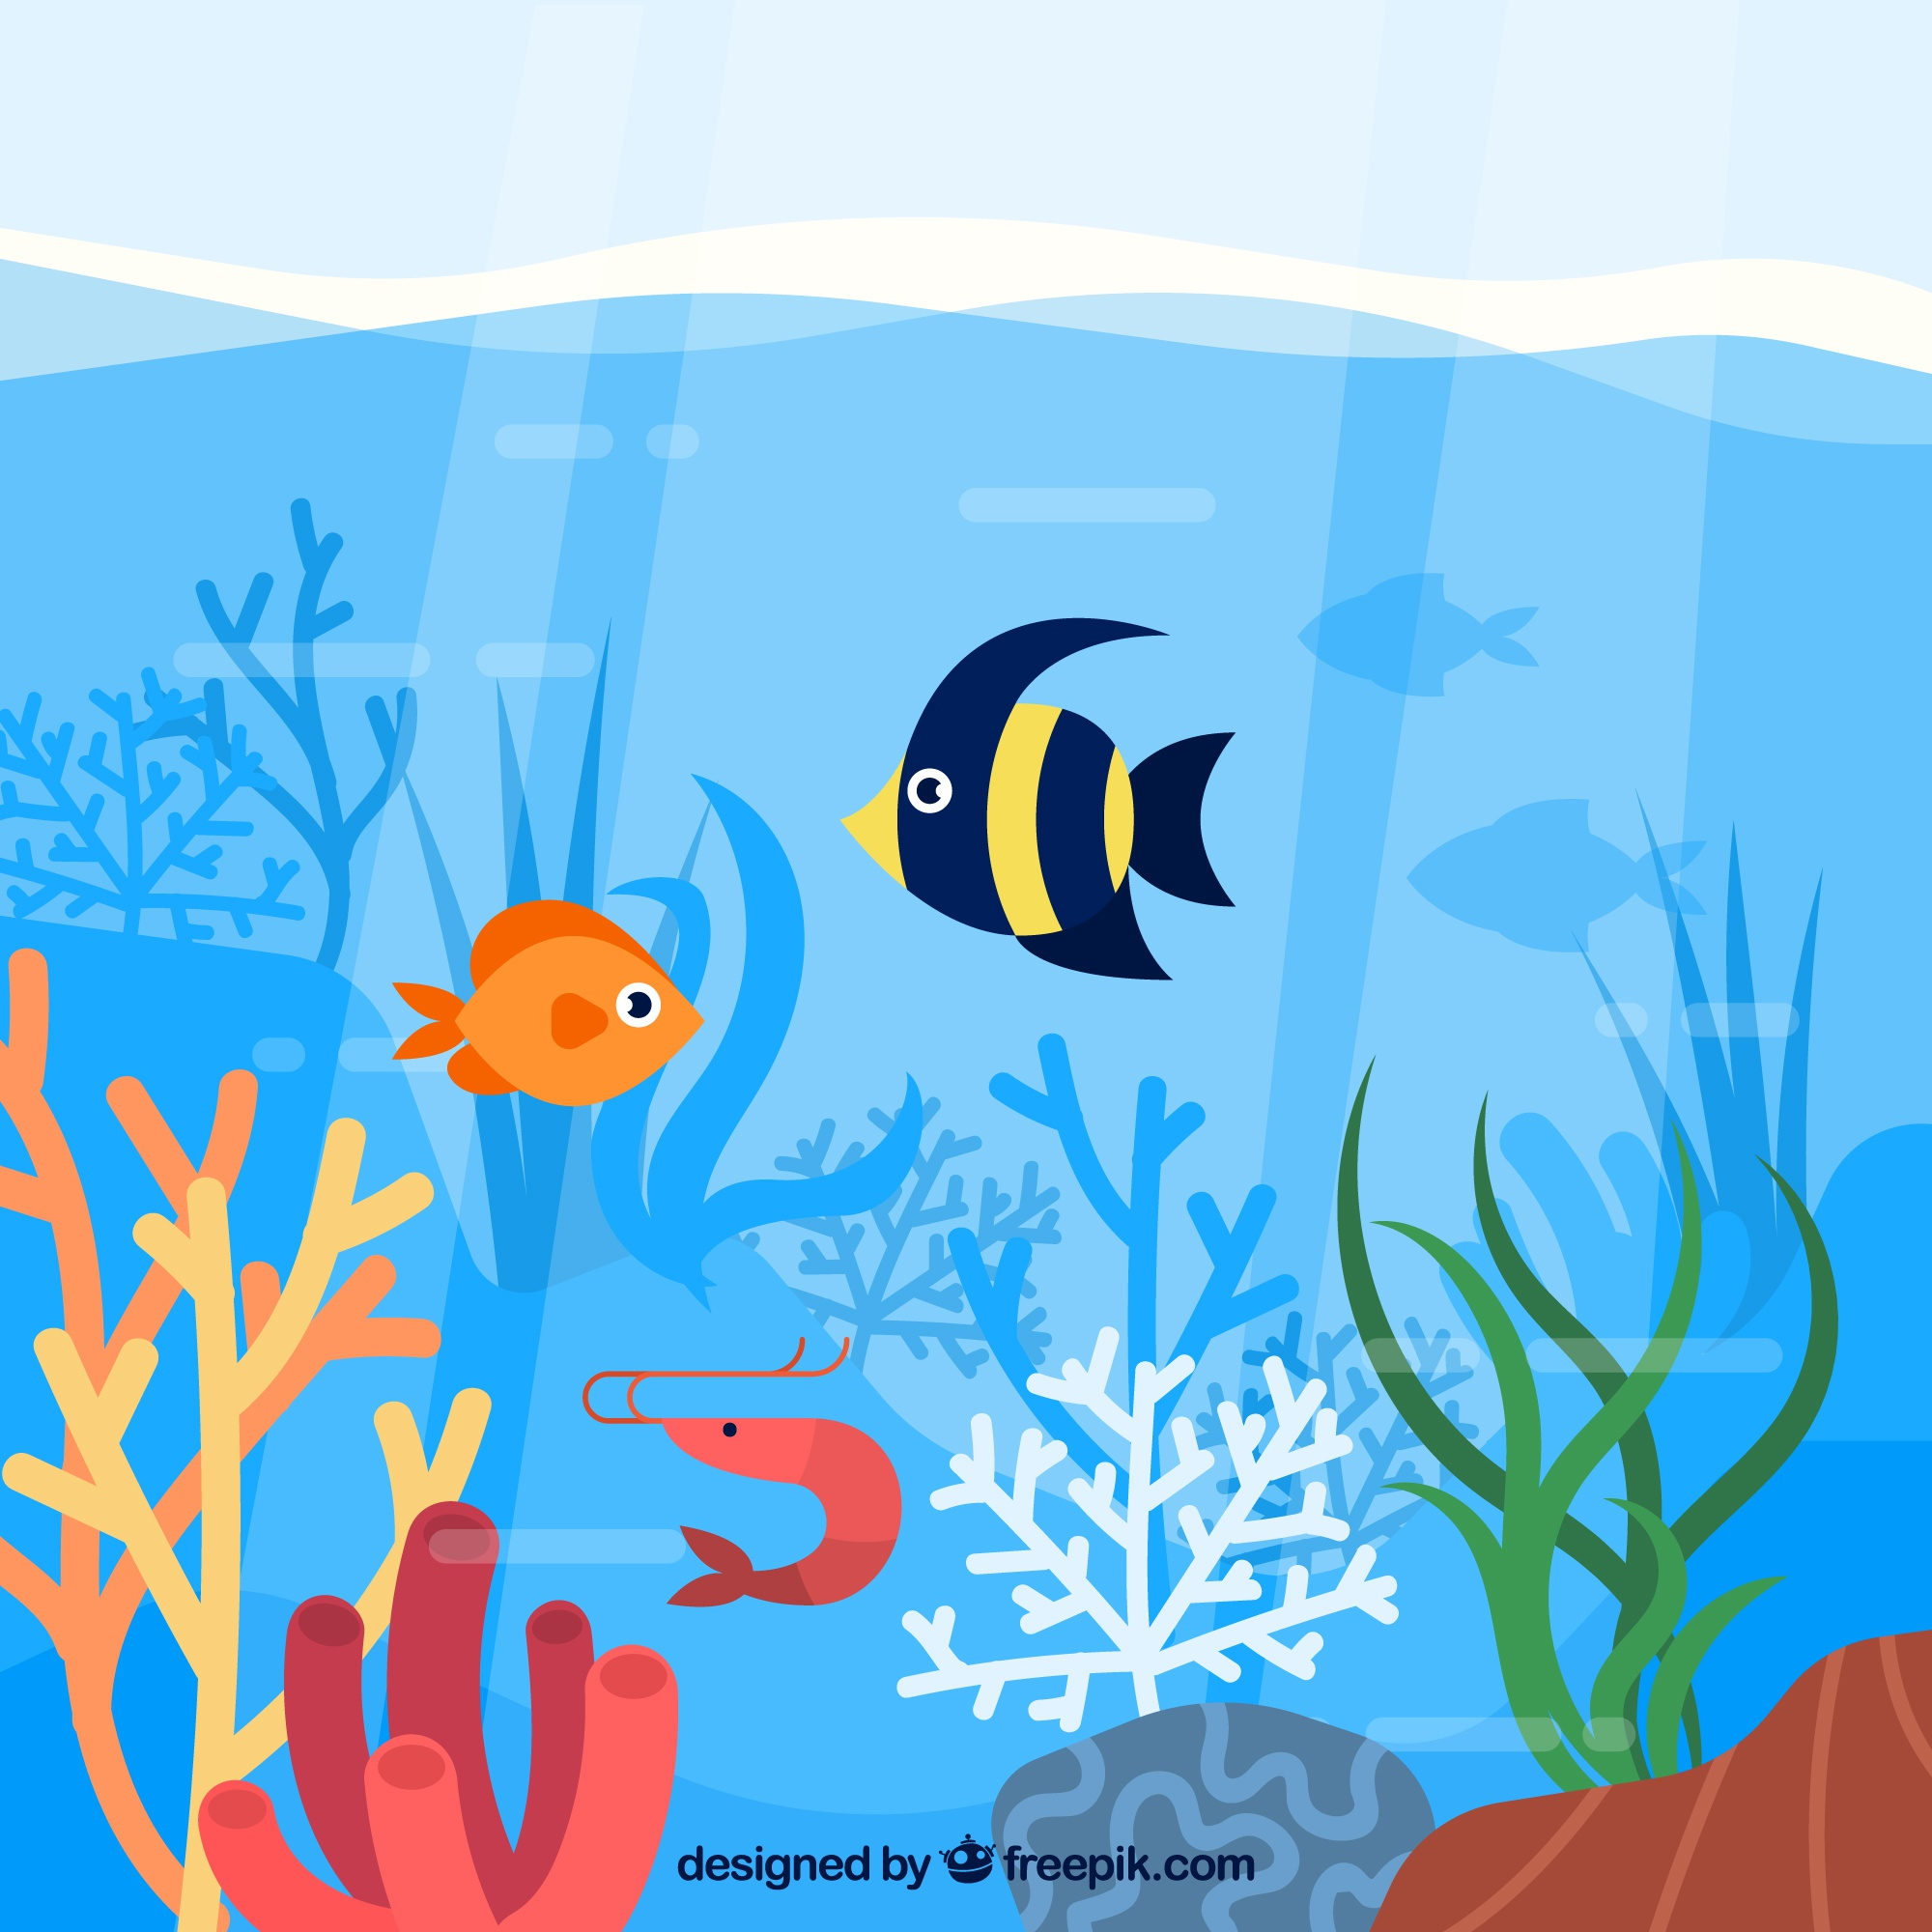 Ecosystem conservation composition with sea animals